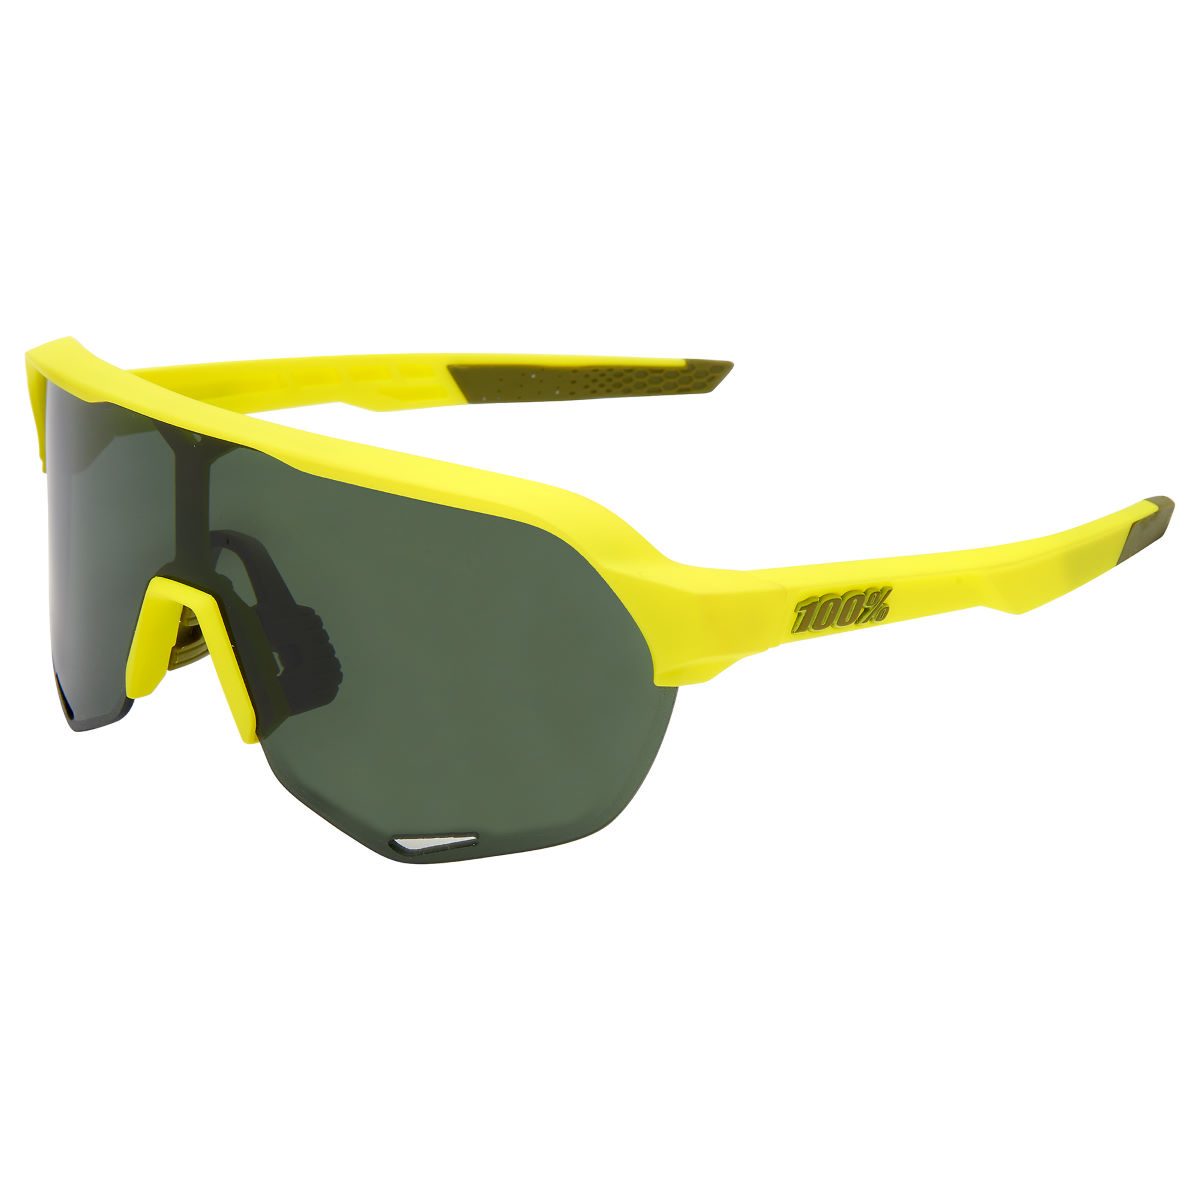 100% S2 Soft Tact Banana Sunglasses - One Size Grey Green Lens